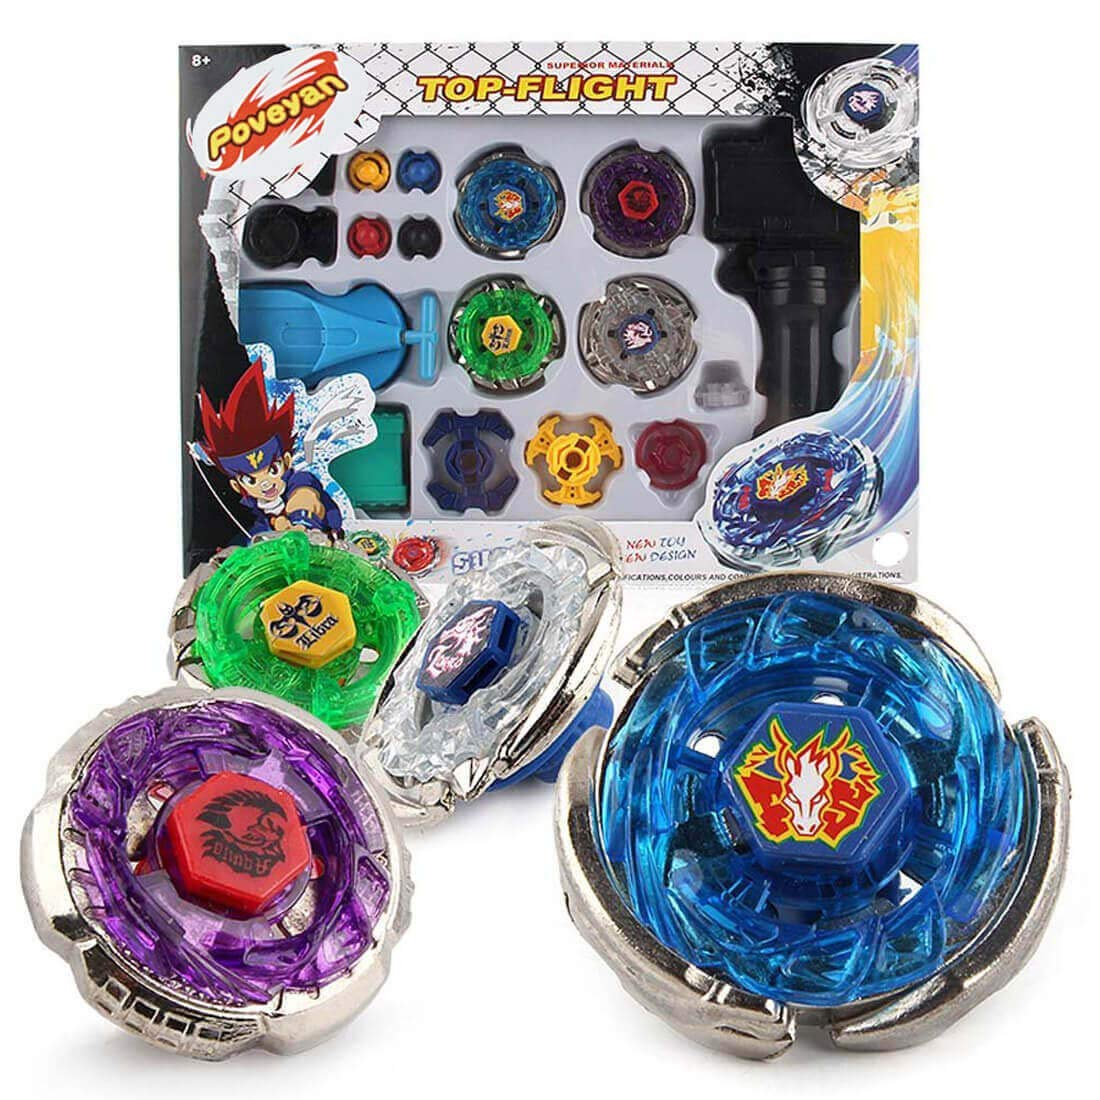 Metal Master Fusion Storm Pegasus/Flame Libra/Earth Eagle/ Lightning L-Drago with 4D Launcher Grip Gyro Top Set